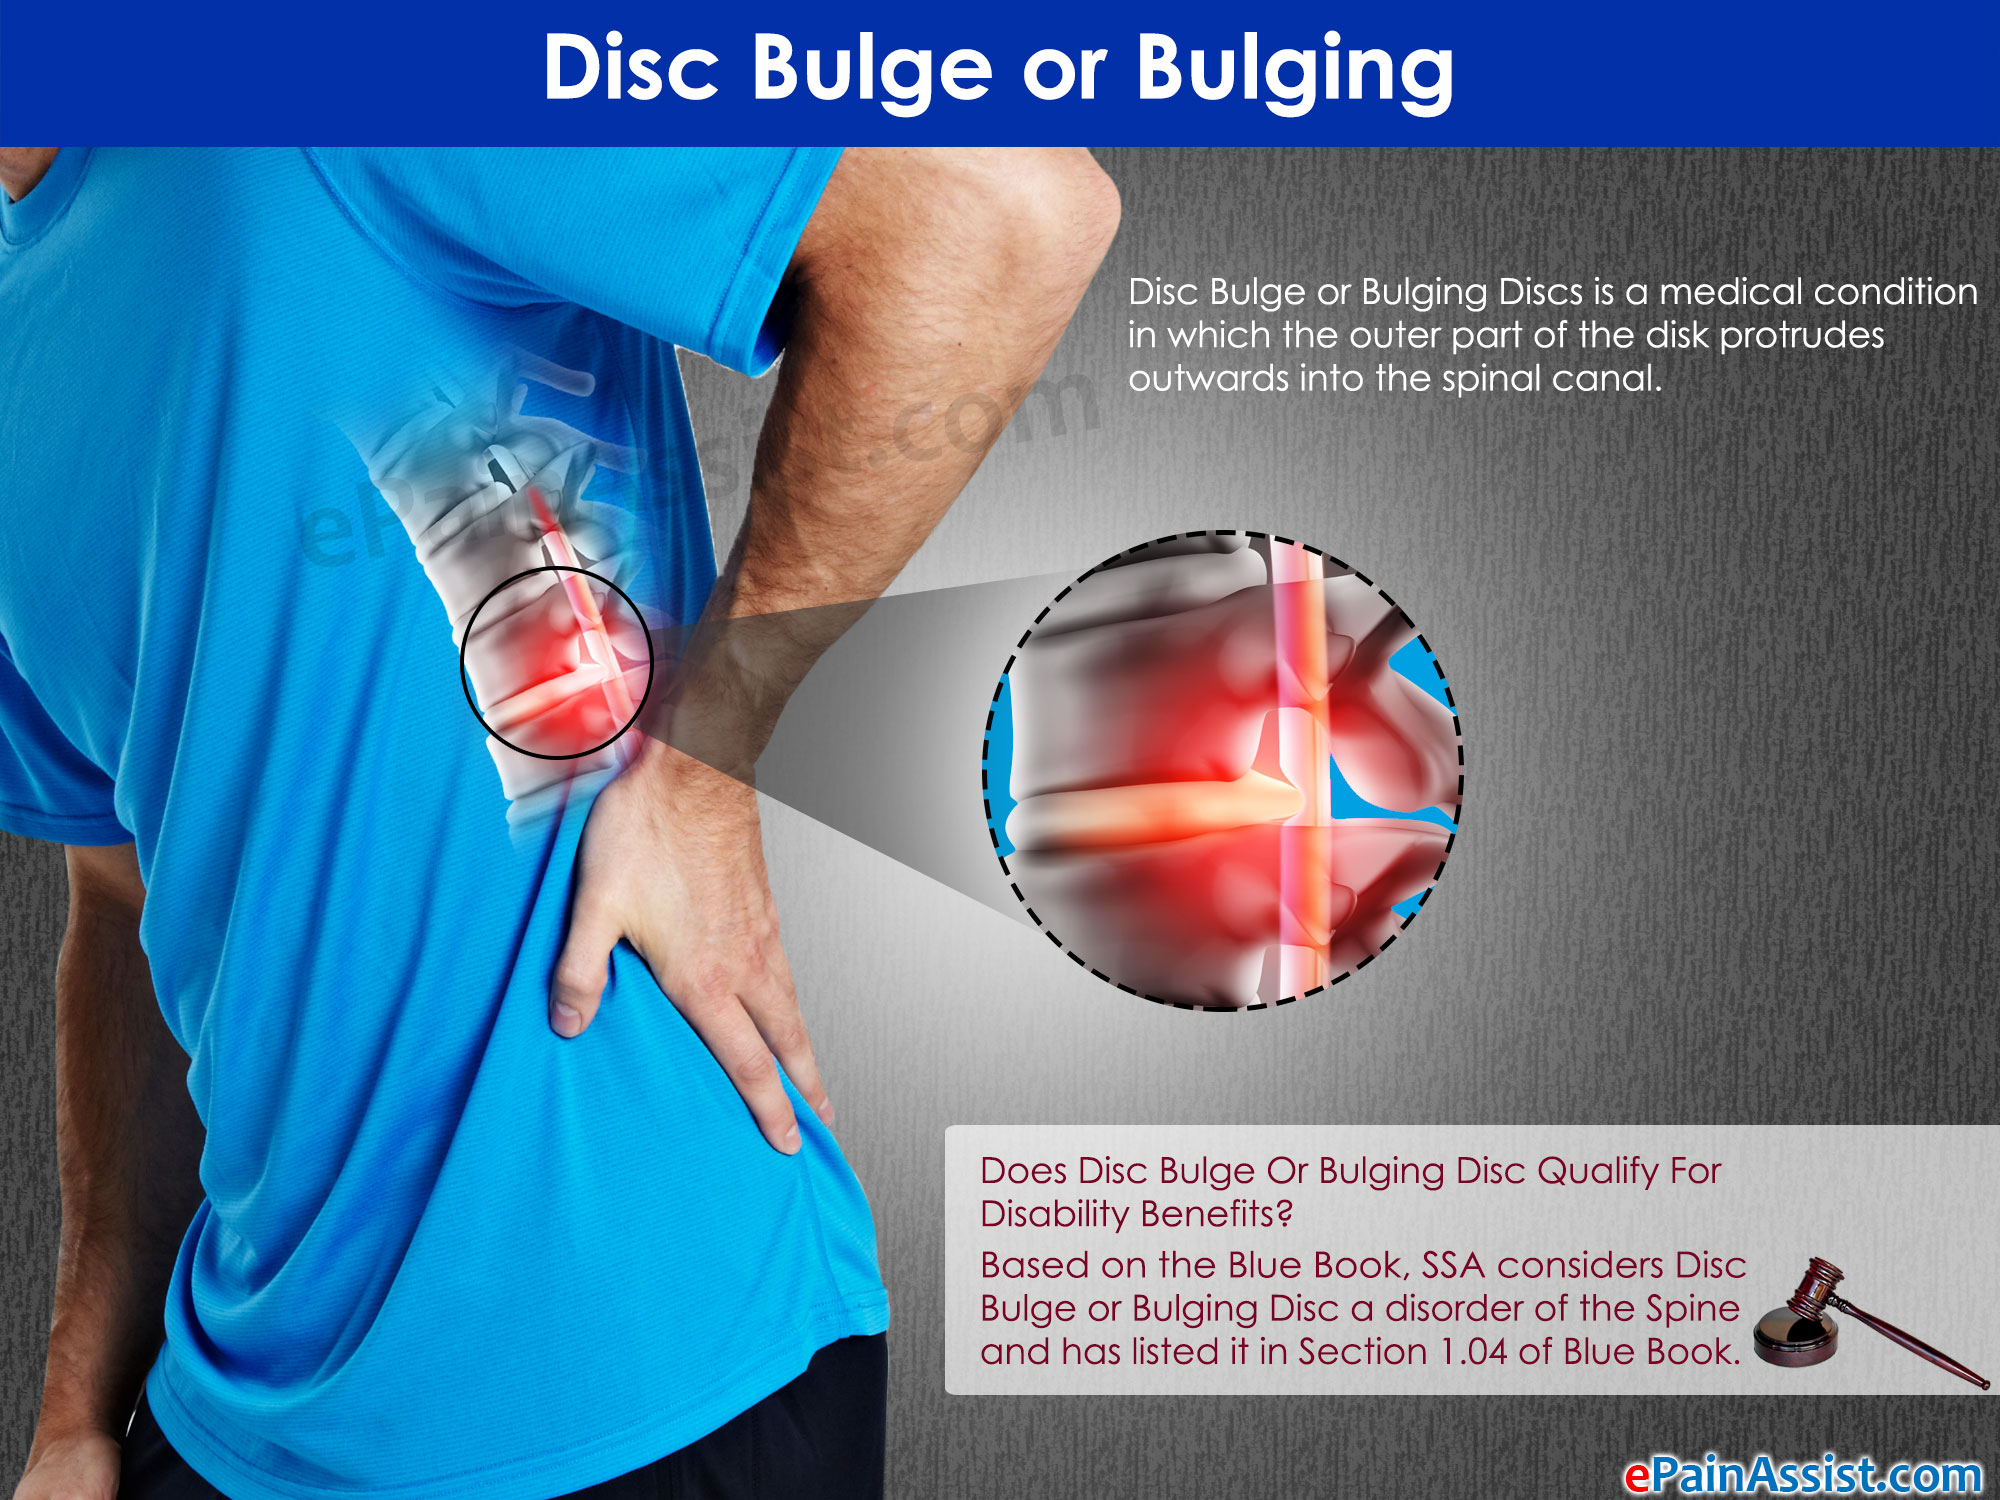 Disc Bulge Or Bulging Disc